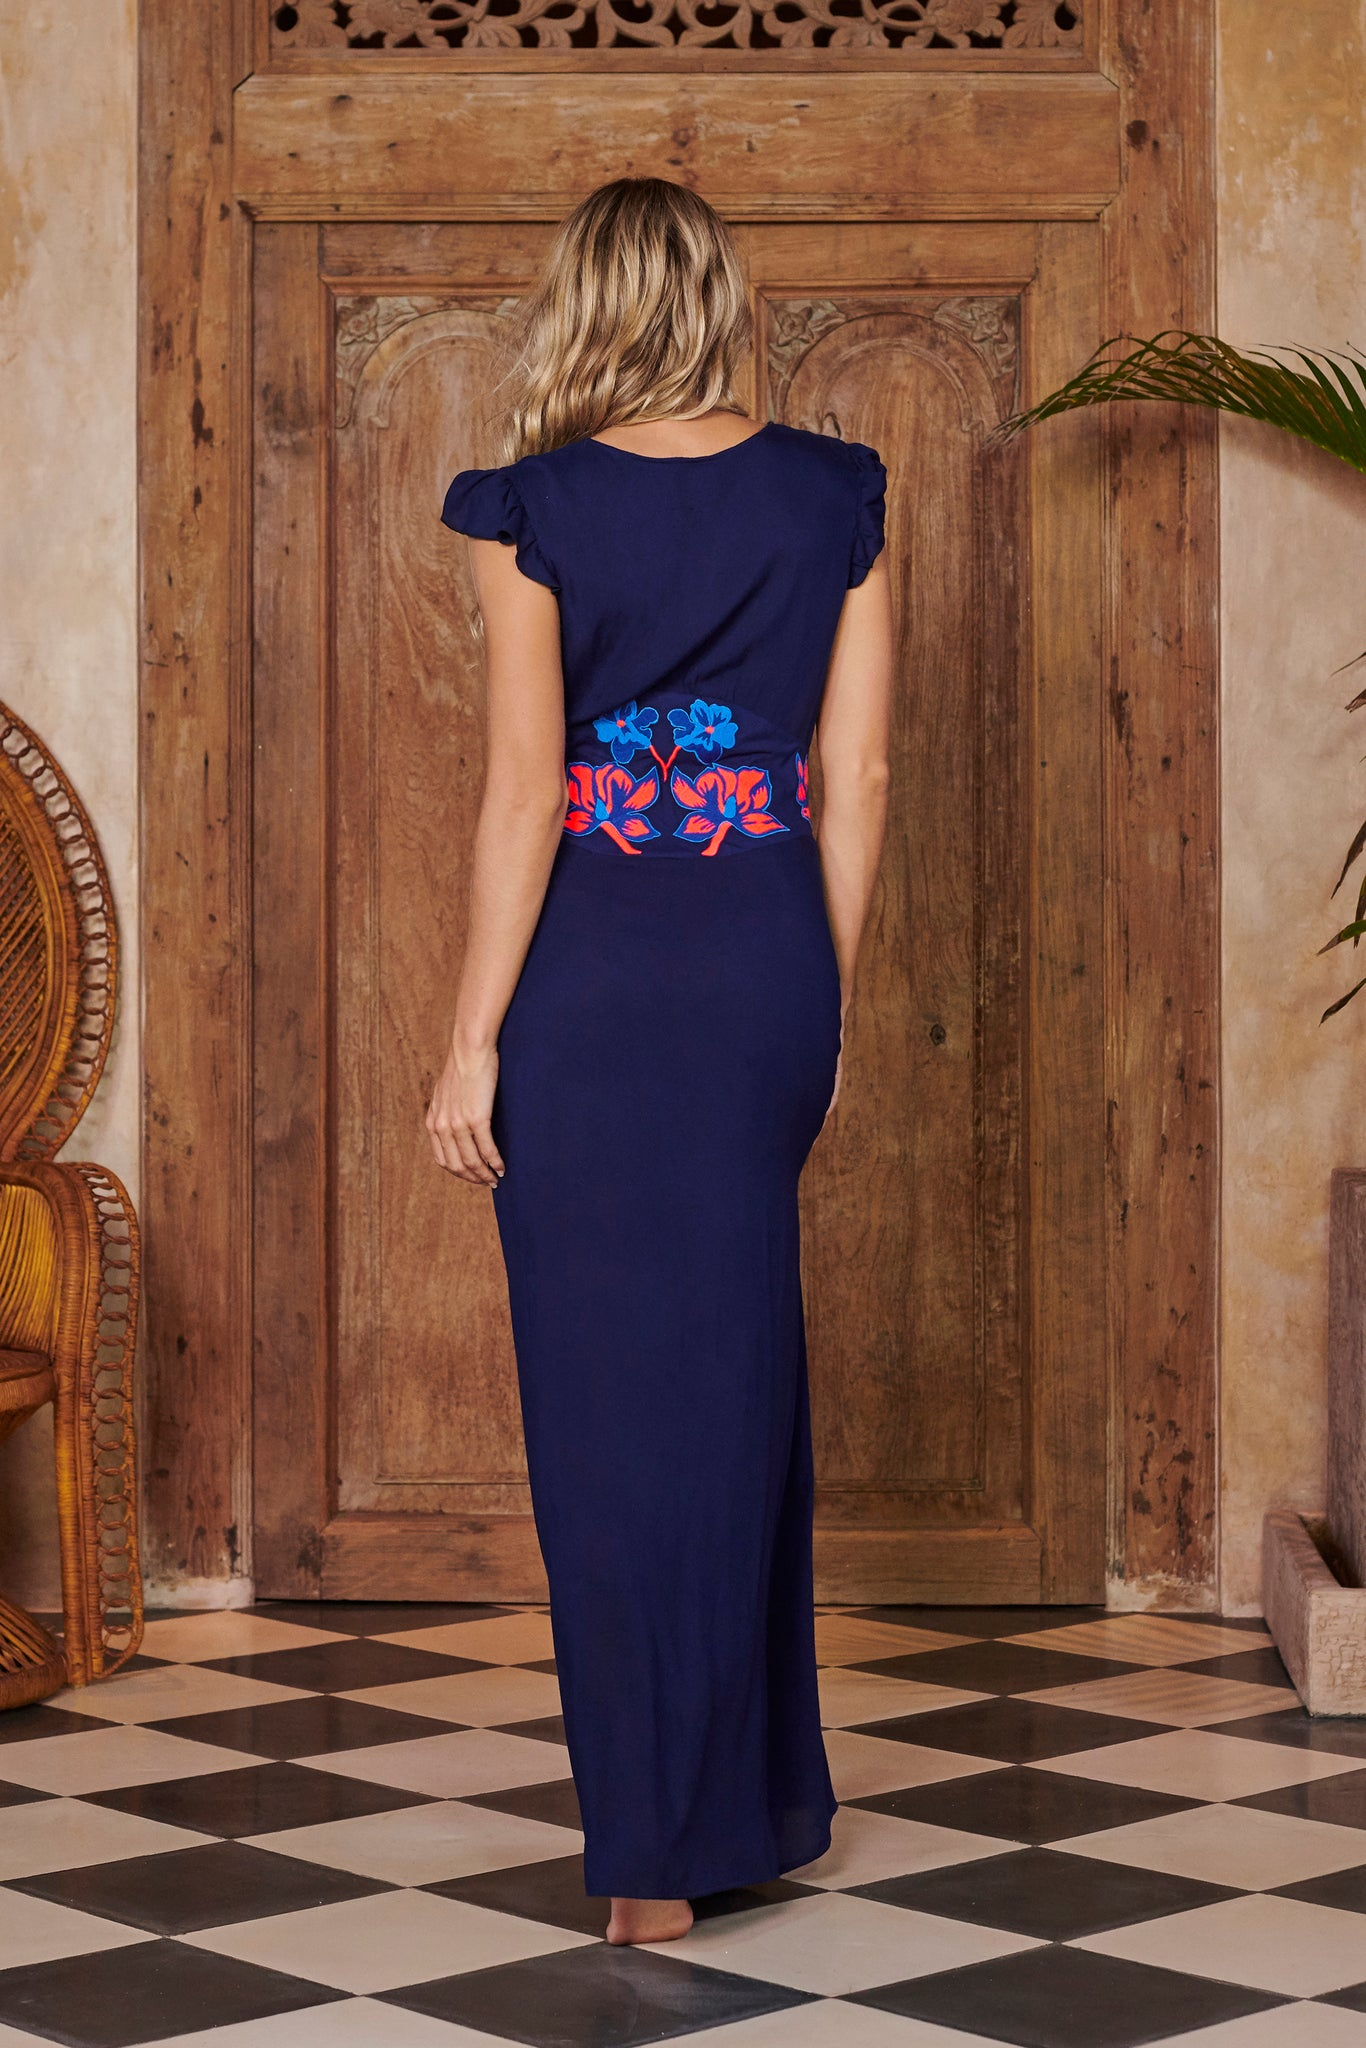 Queen Navy Blue Embroidered Maxi Dress